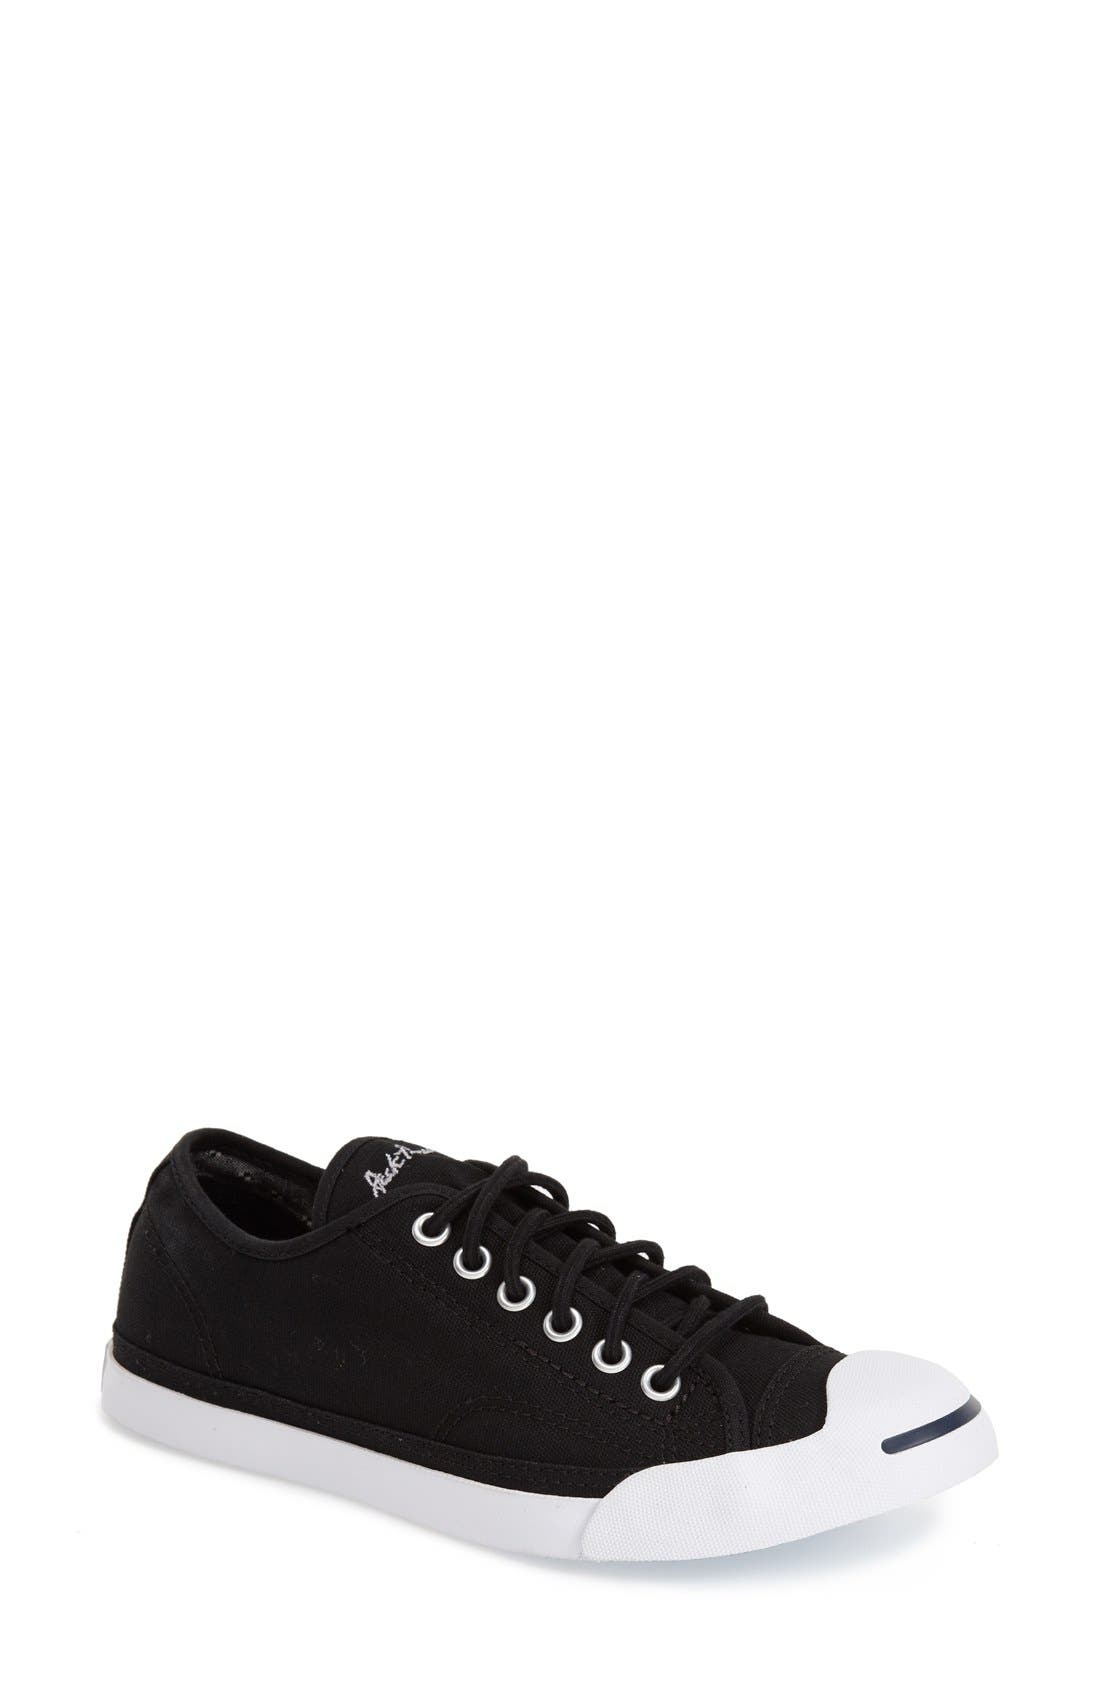 'Jack Purcell' Low Top Slip On Sneaker,                         Main,                         color,